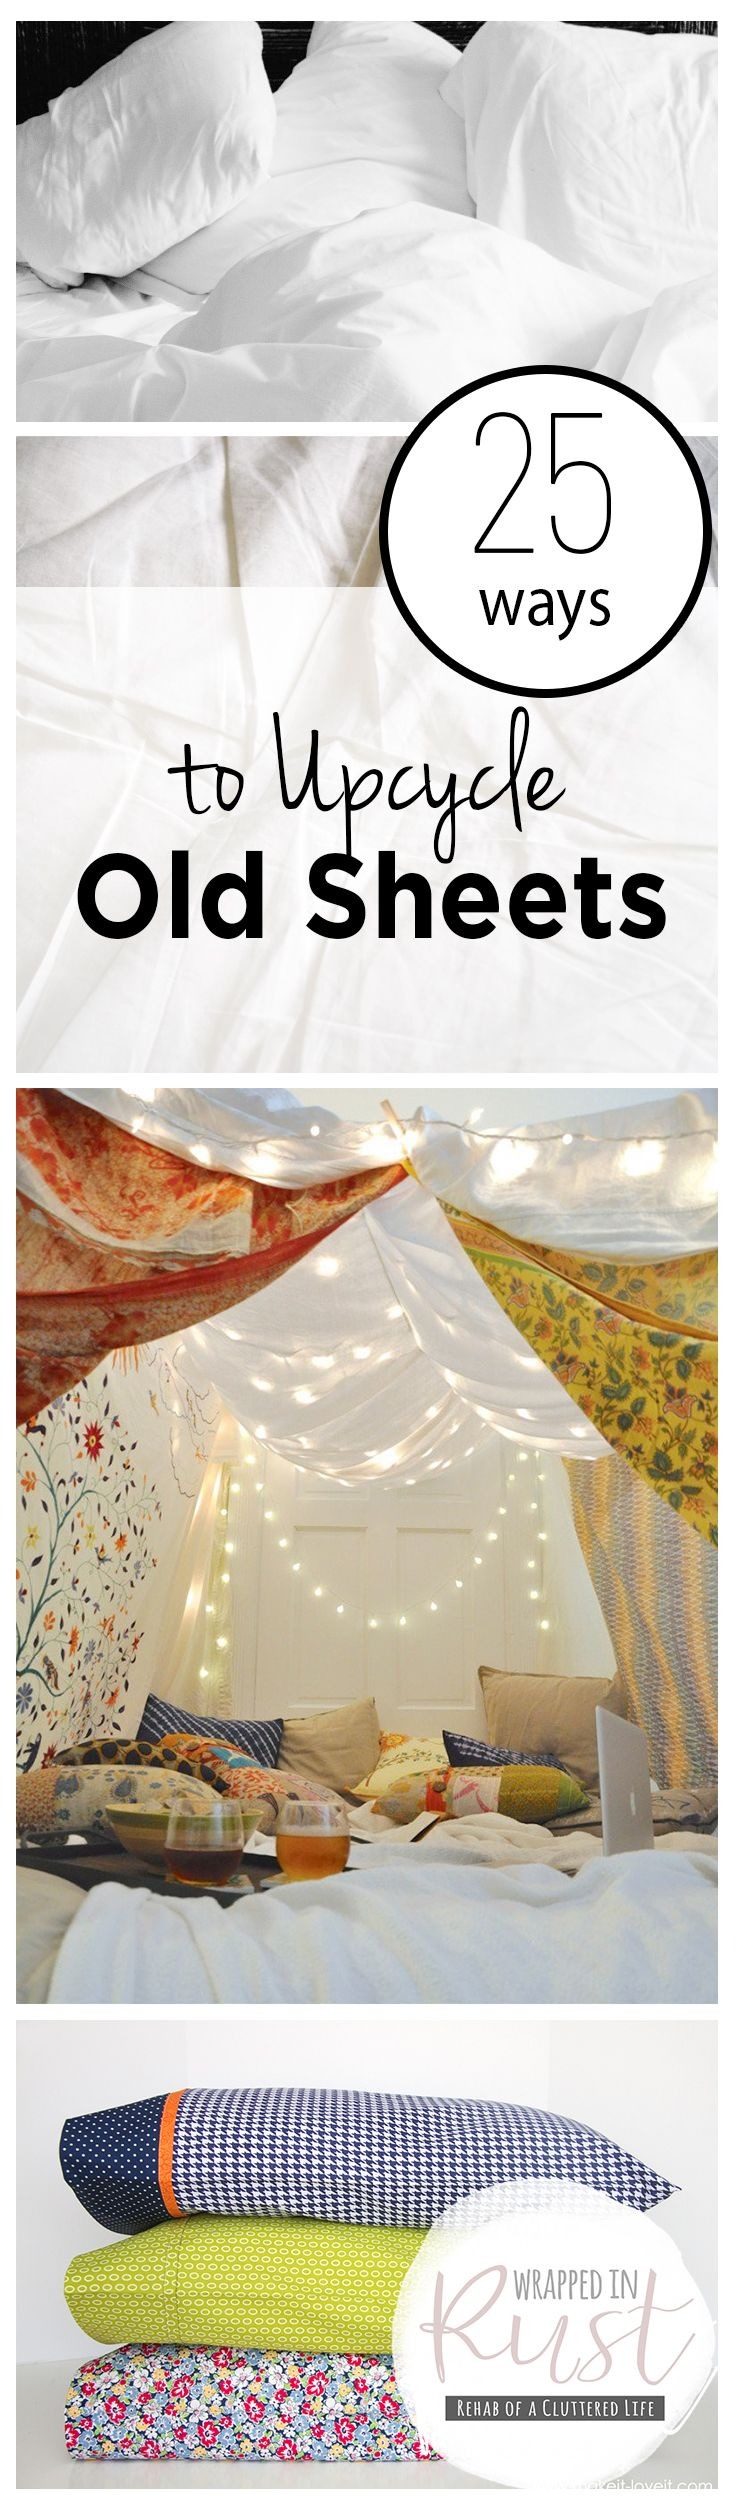 25 Ways to Upcycle Old Sheets